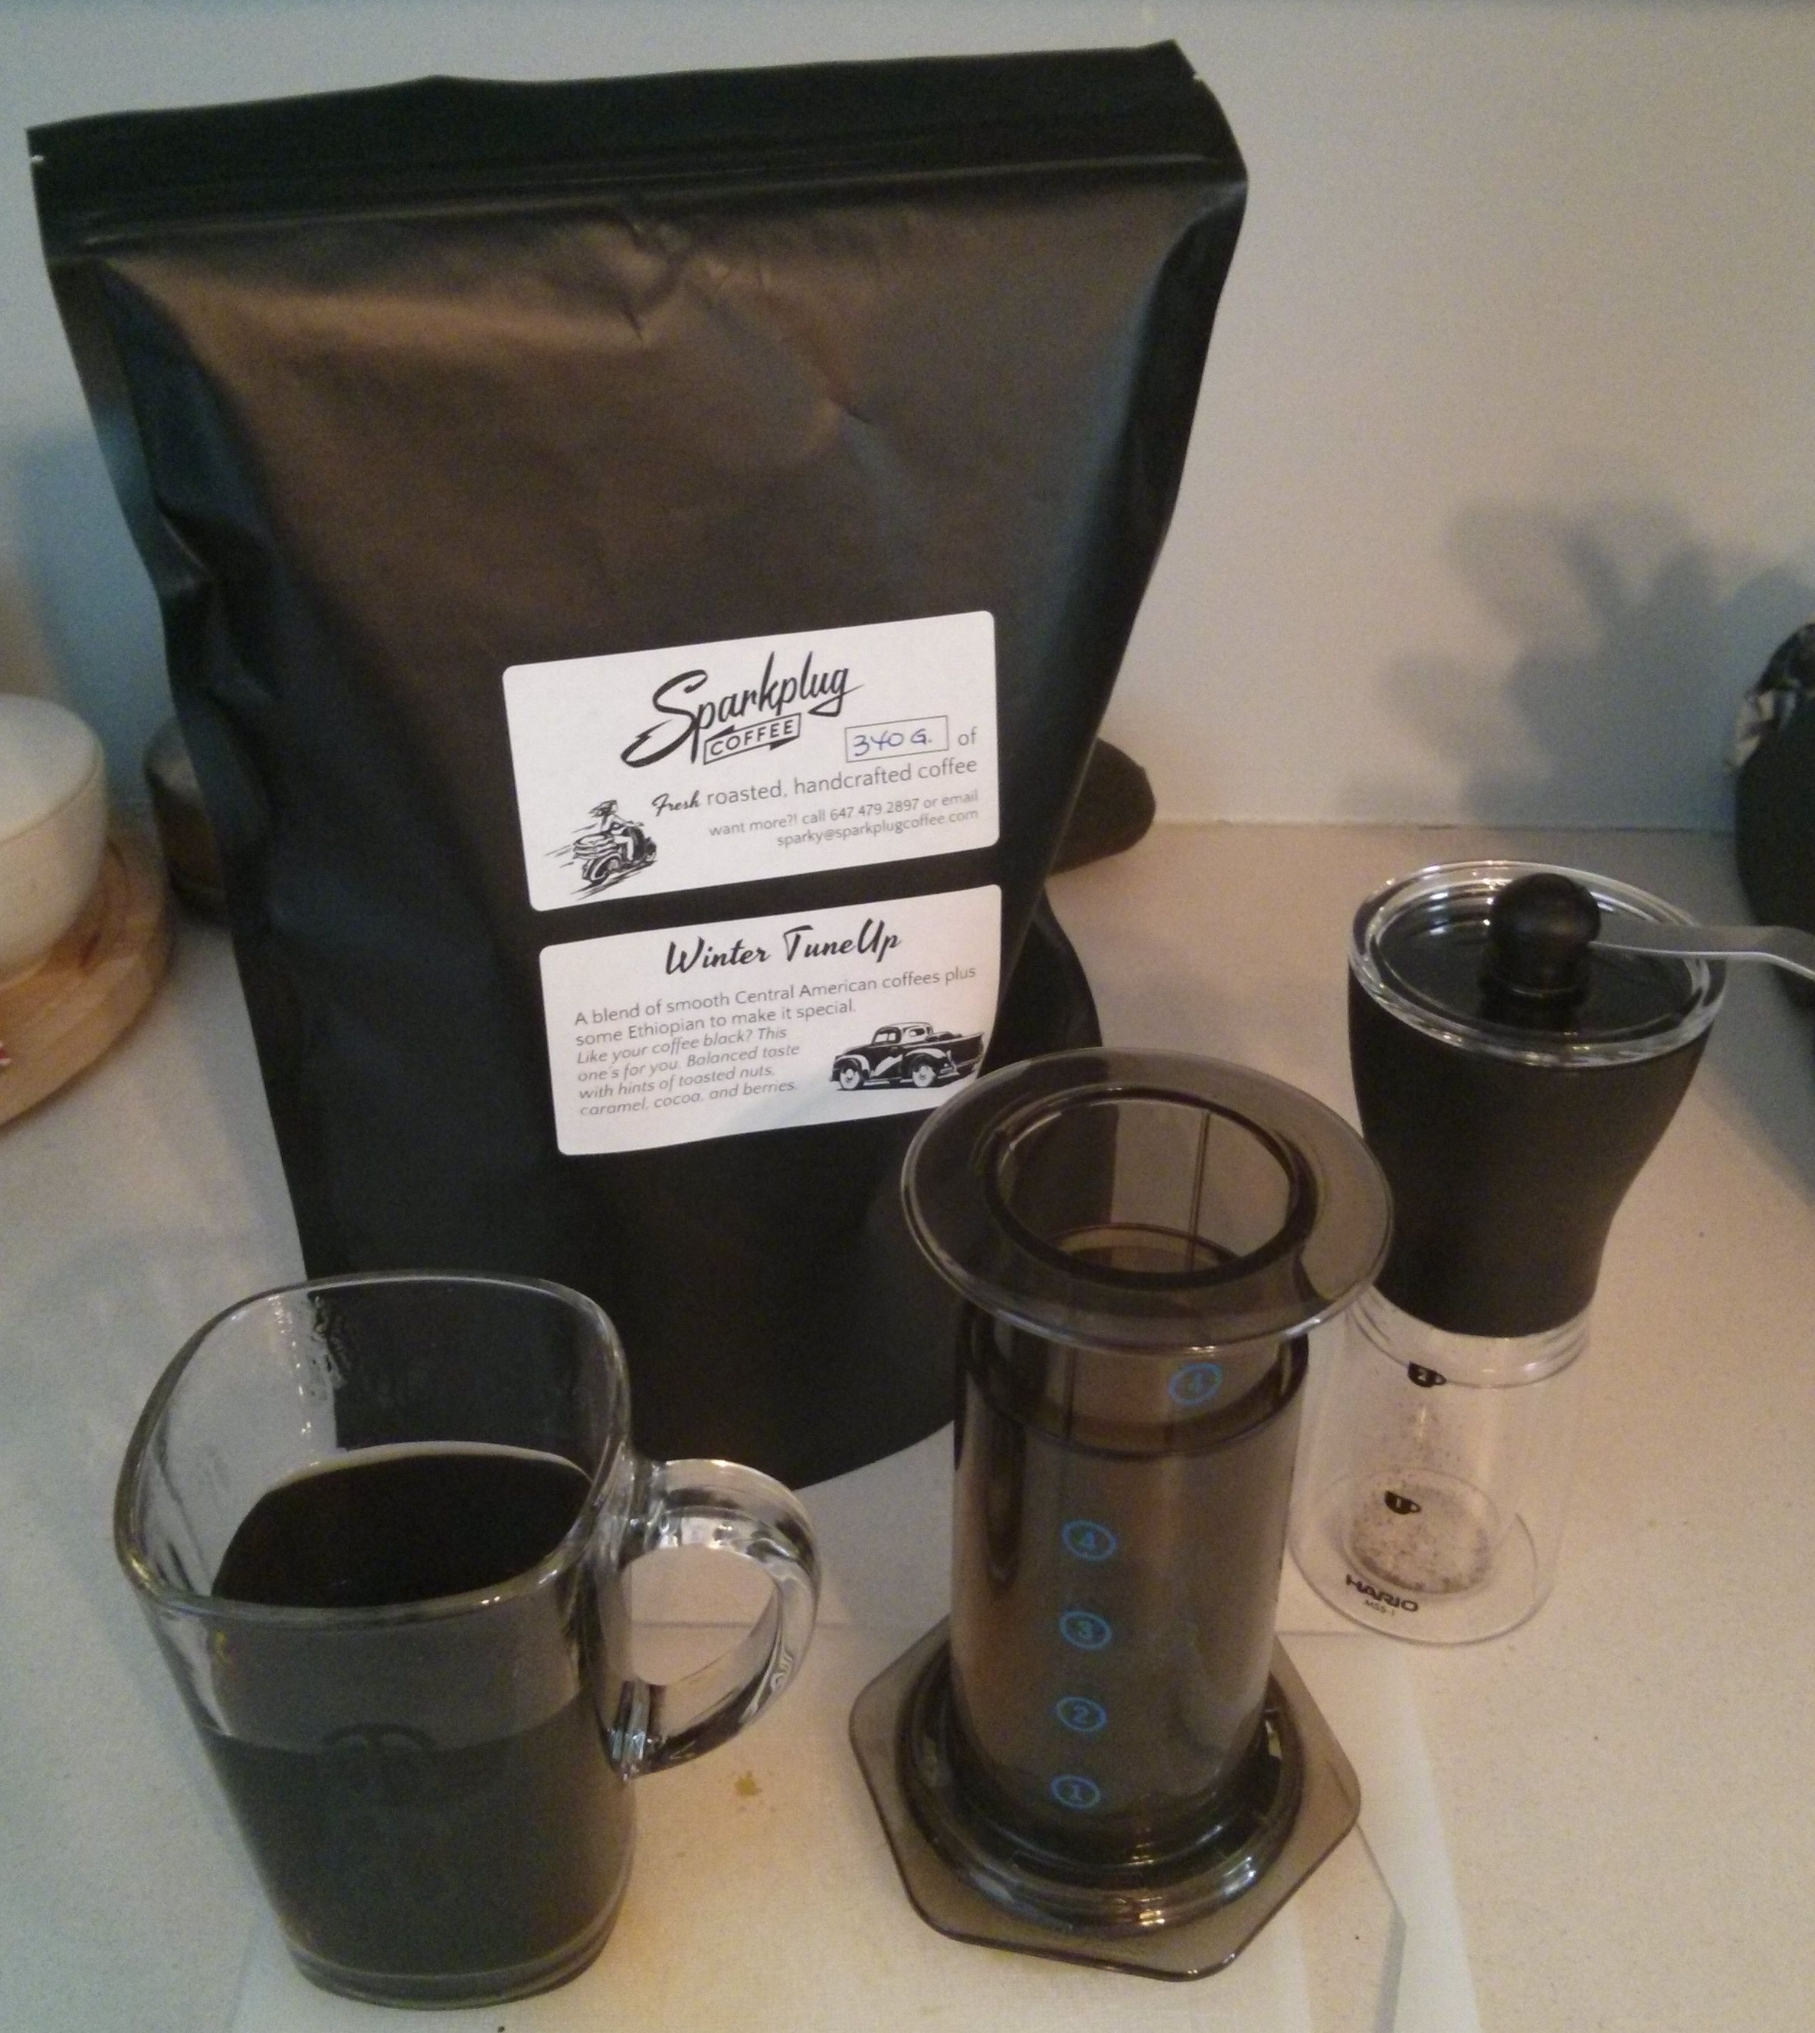 Darryl's first order from Sparkplug Coffee - hand grinder, Aeropress, naked coffee - a real coffee lover!